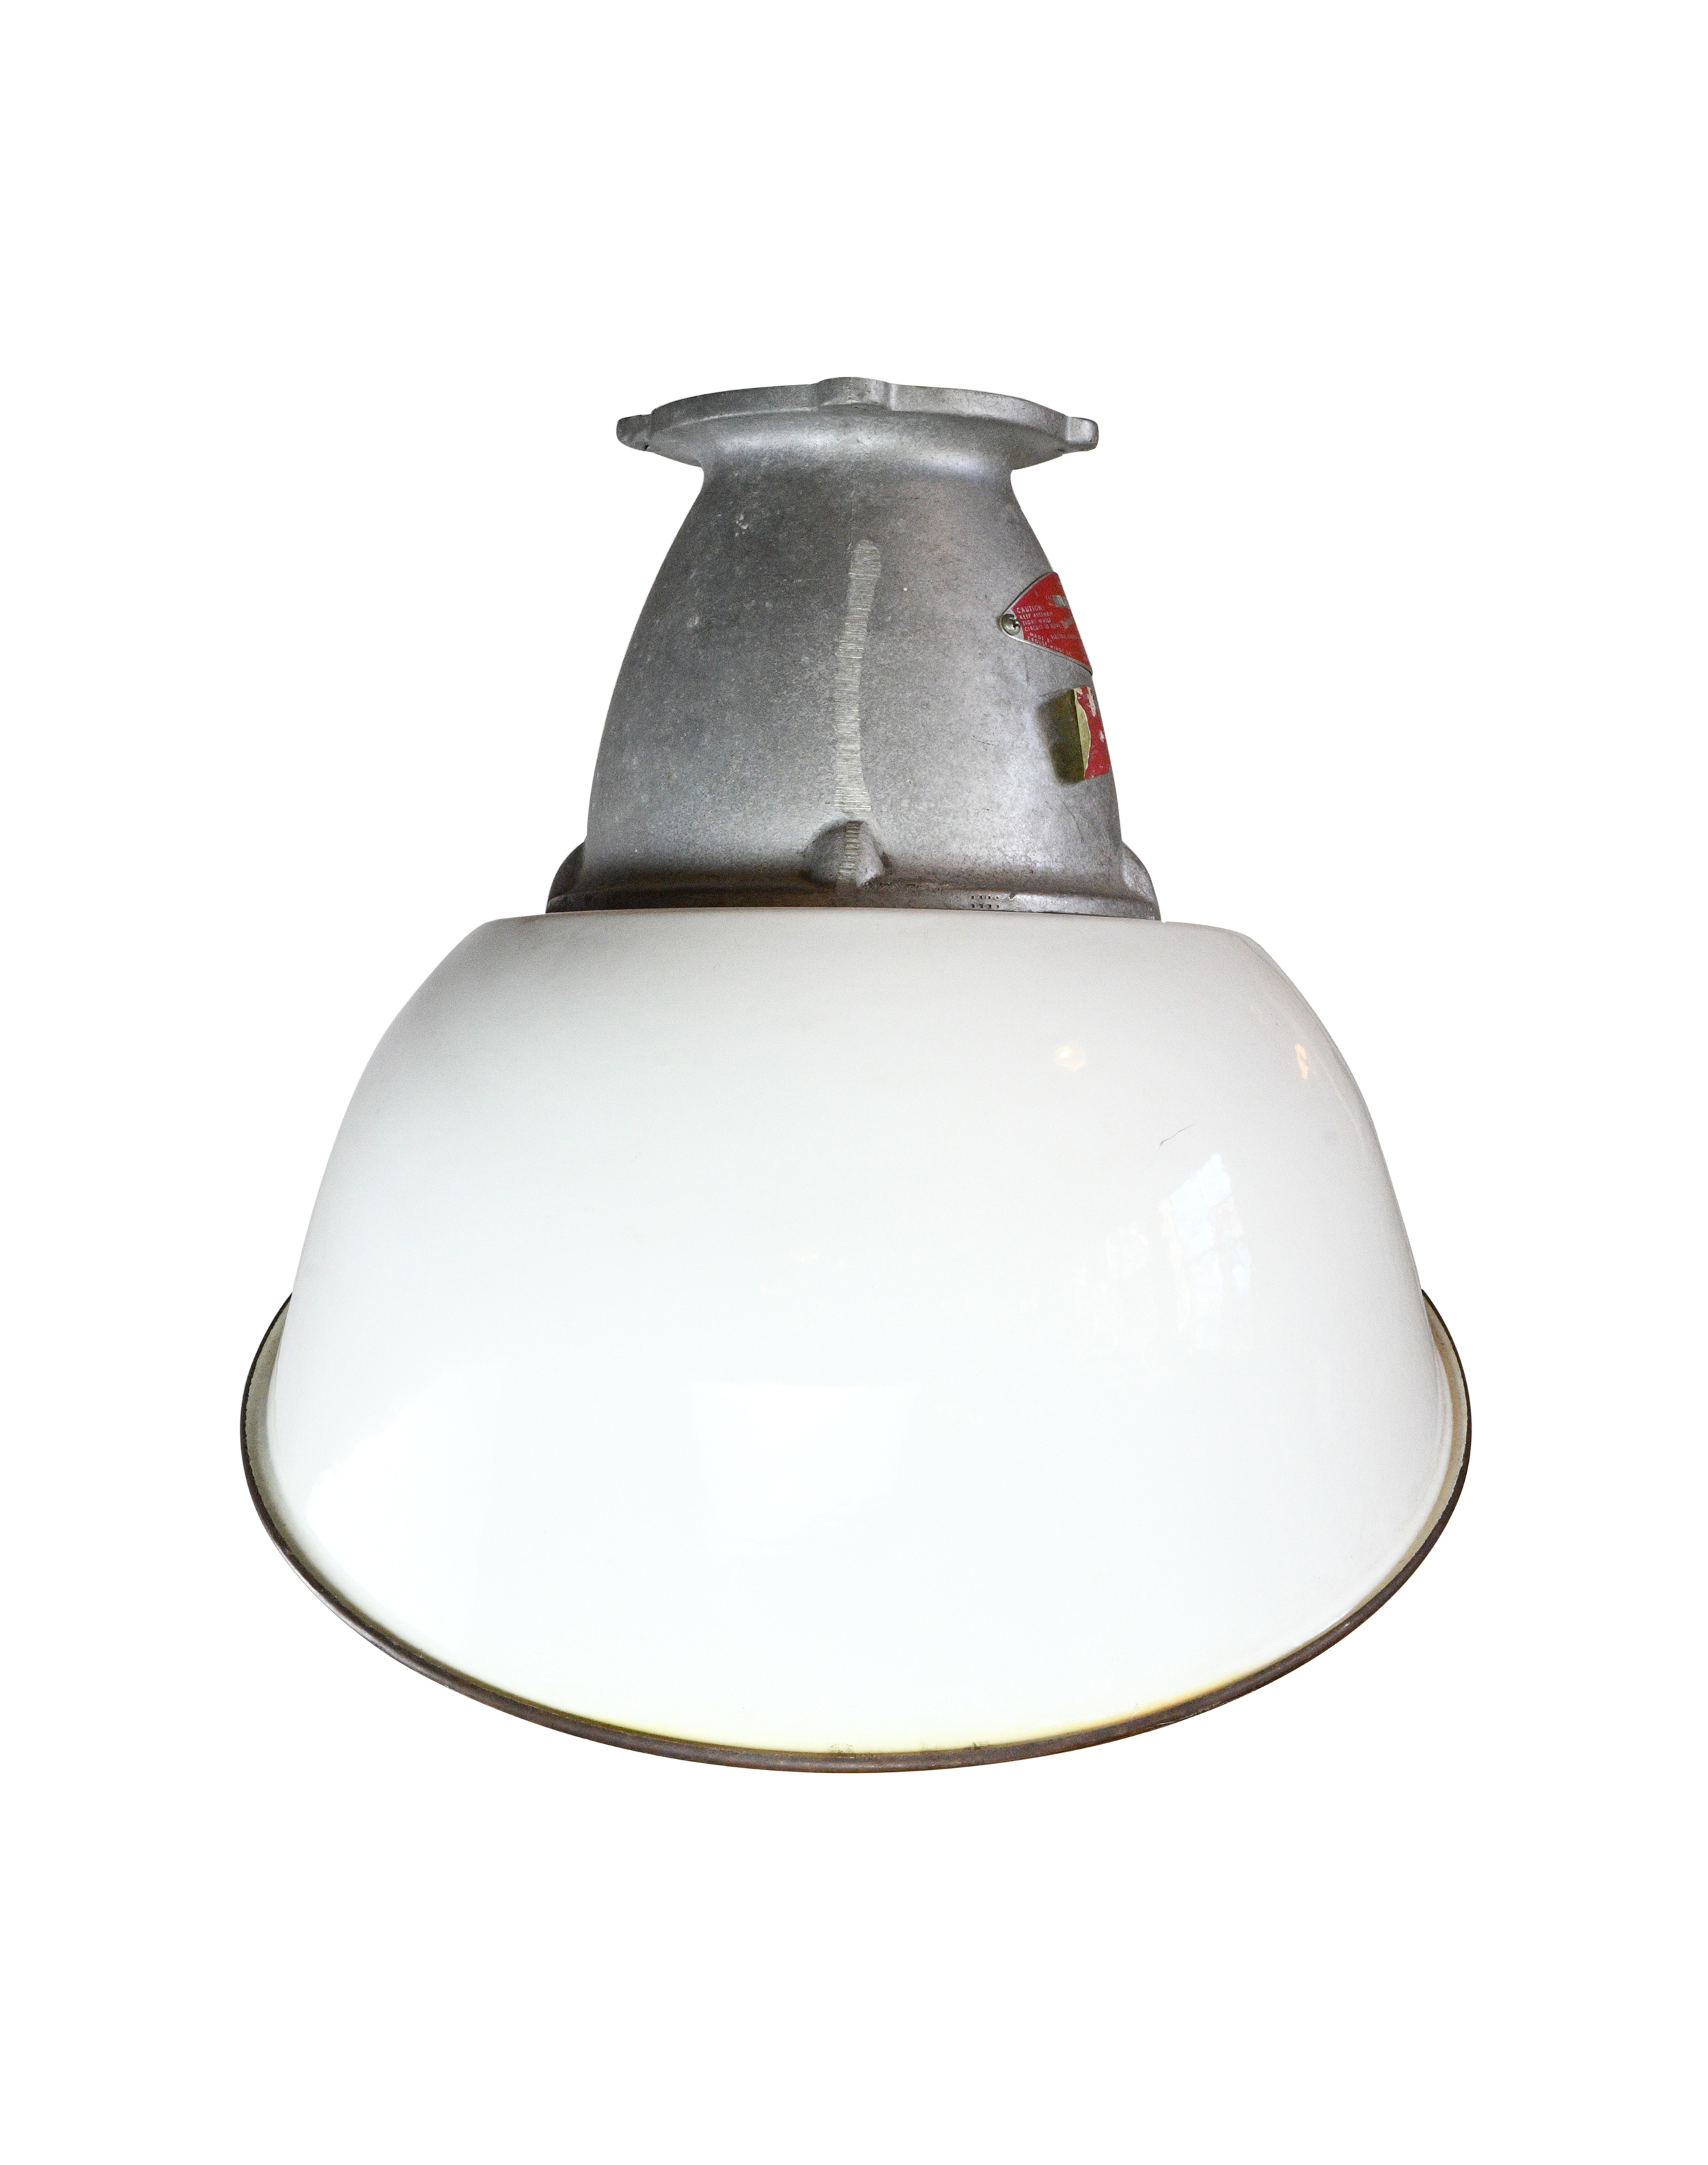 46283-industral-flushmount-pendant-with-thick-glass-22.jpg